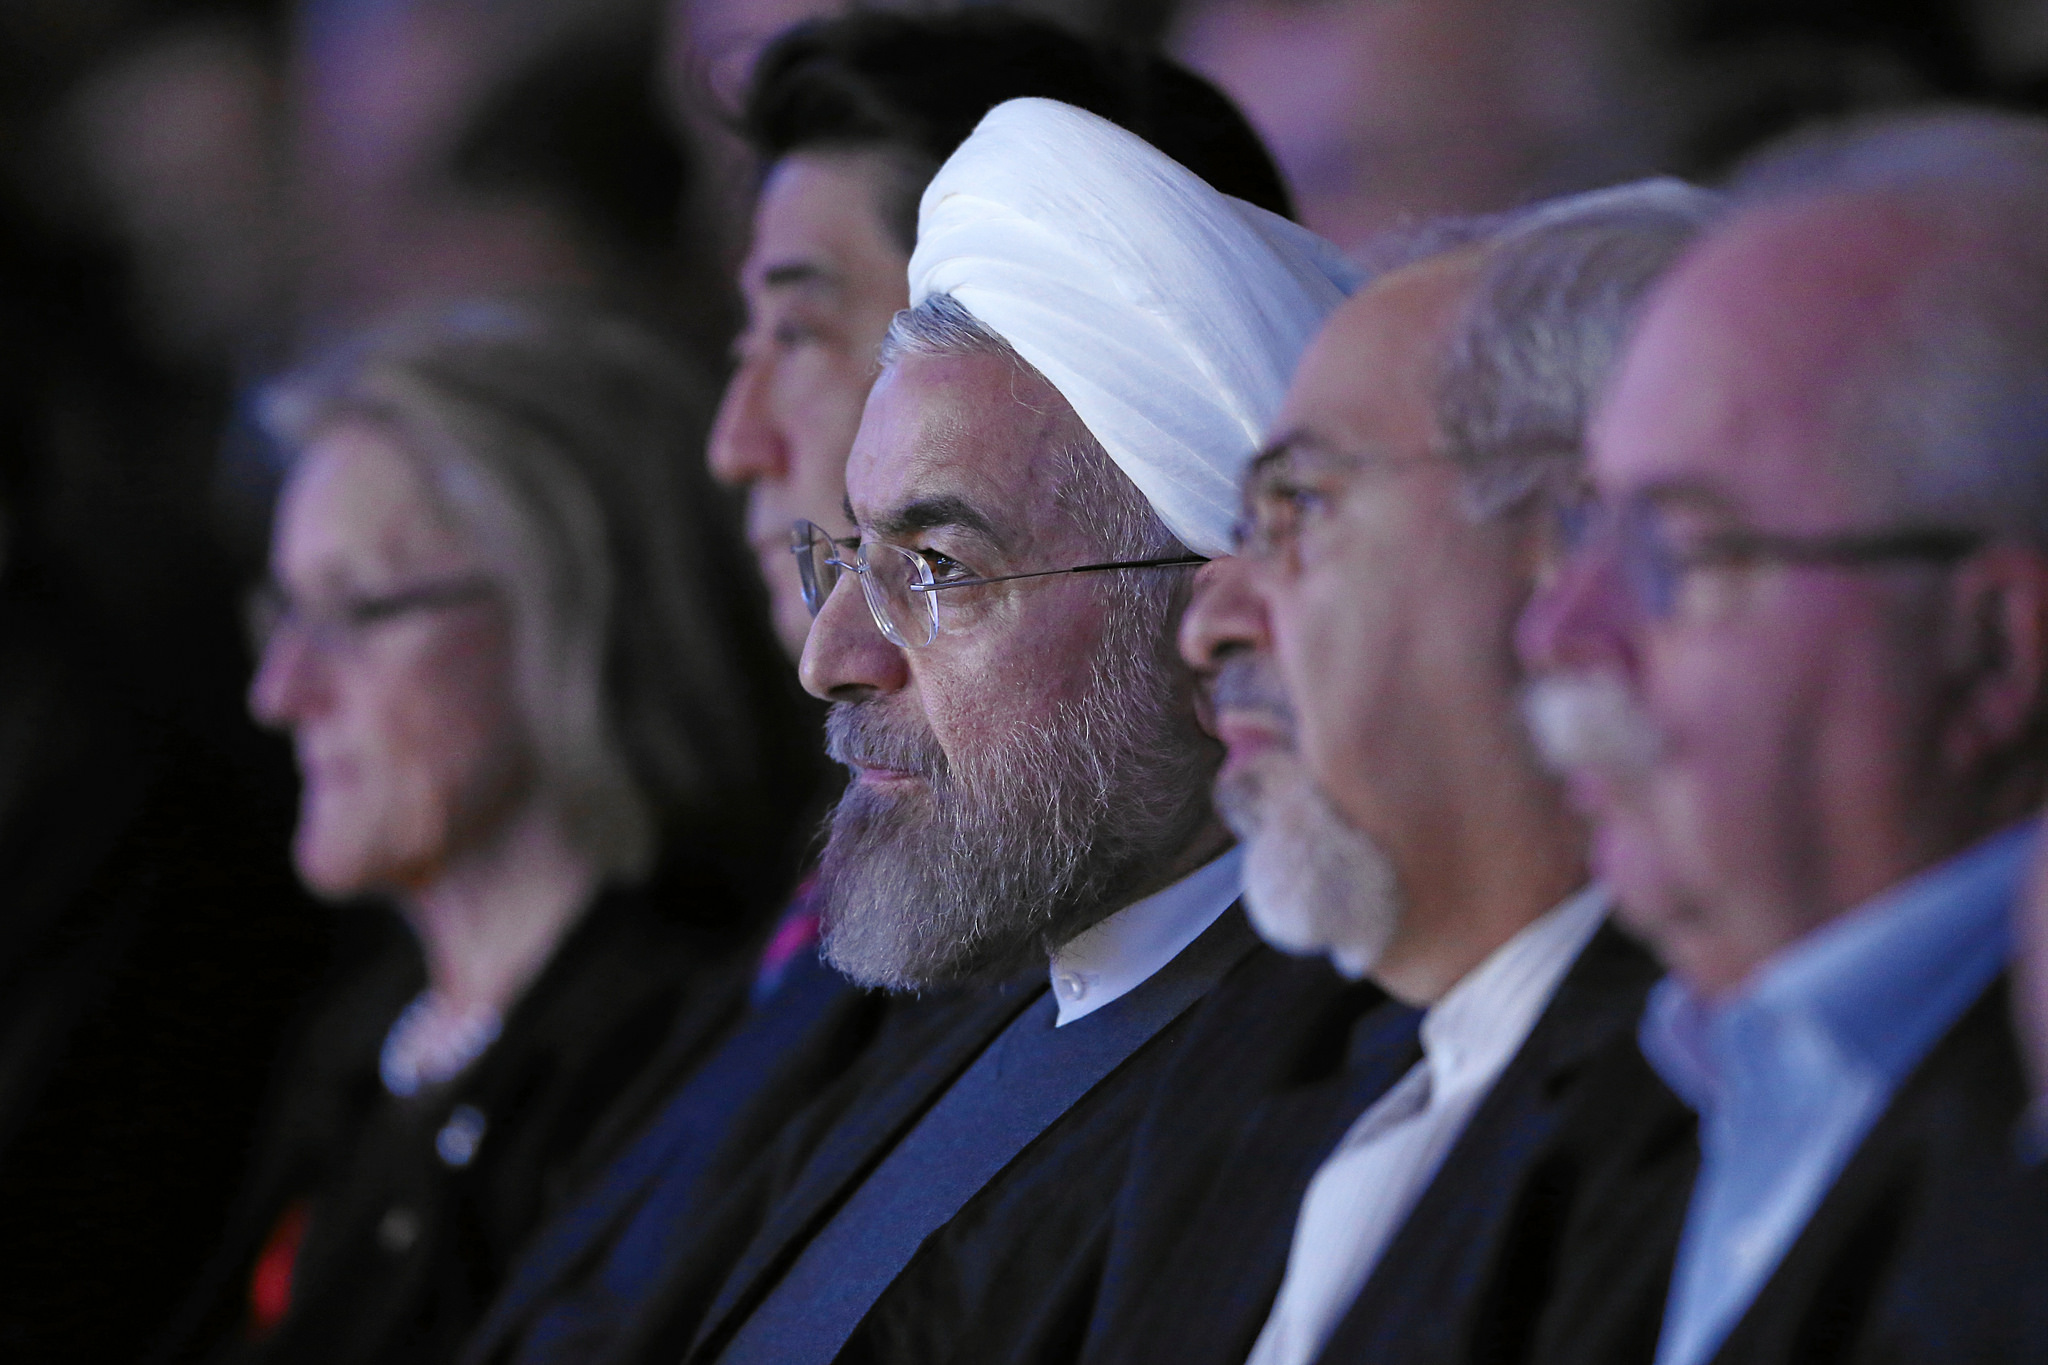 Reset Relations with Iran